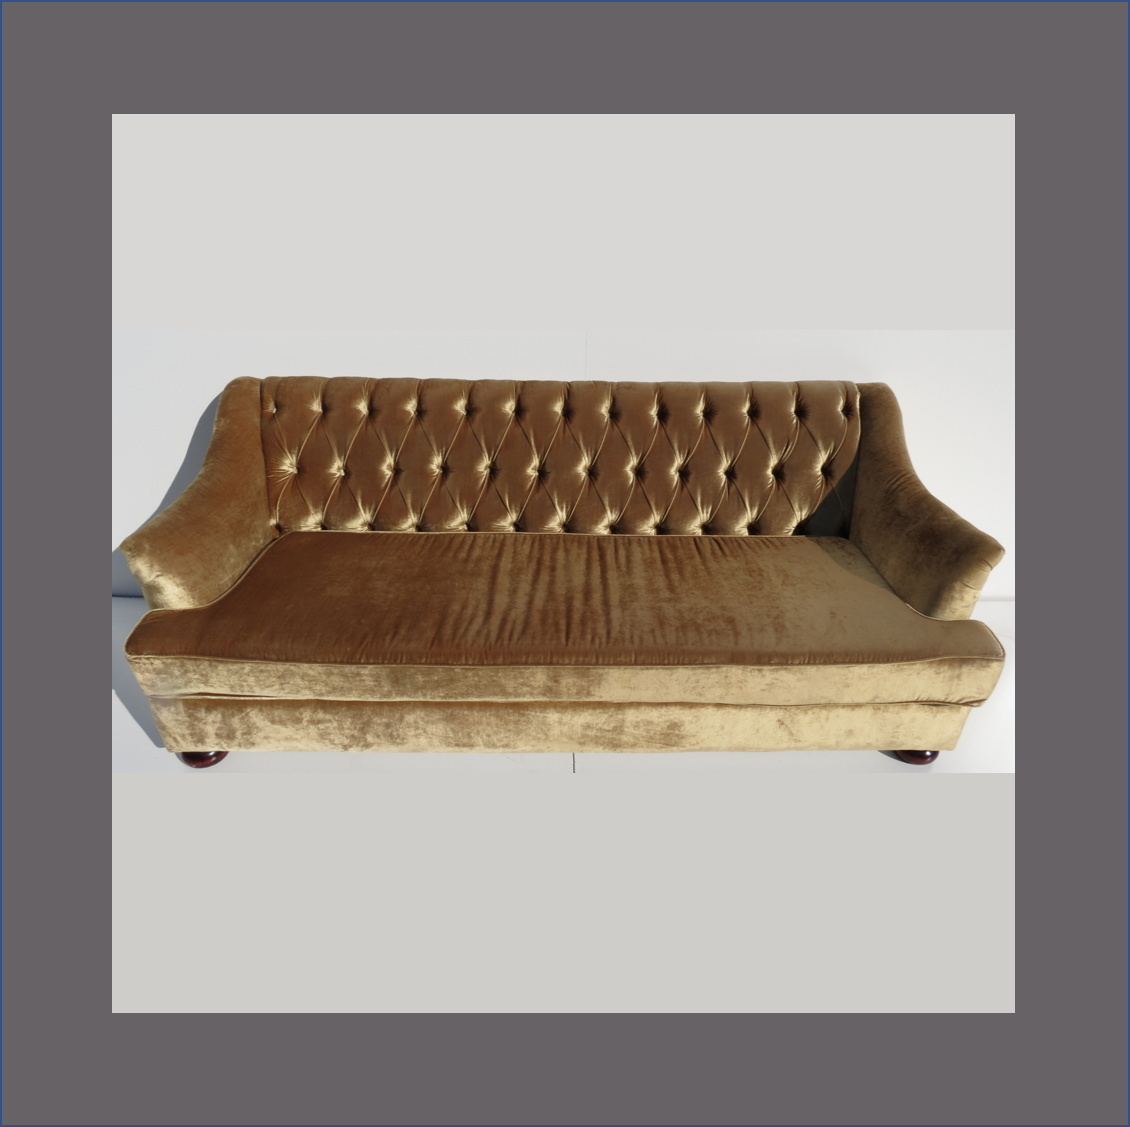 gold-chesterfield-couch